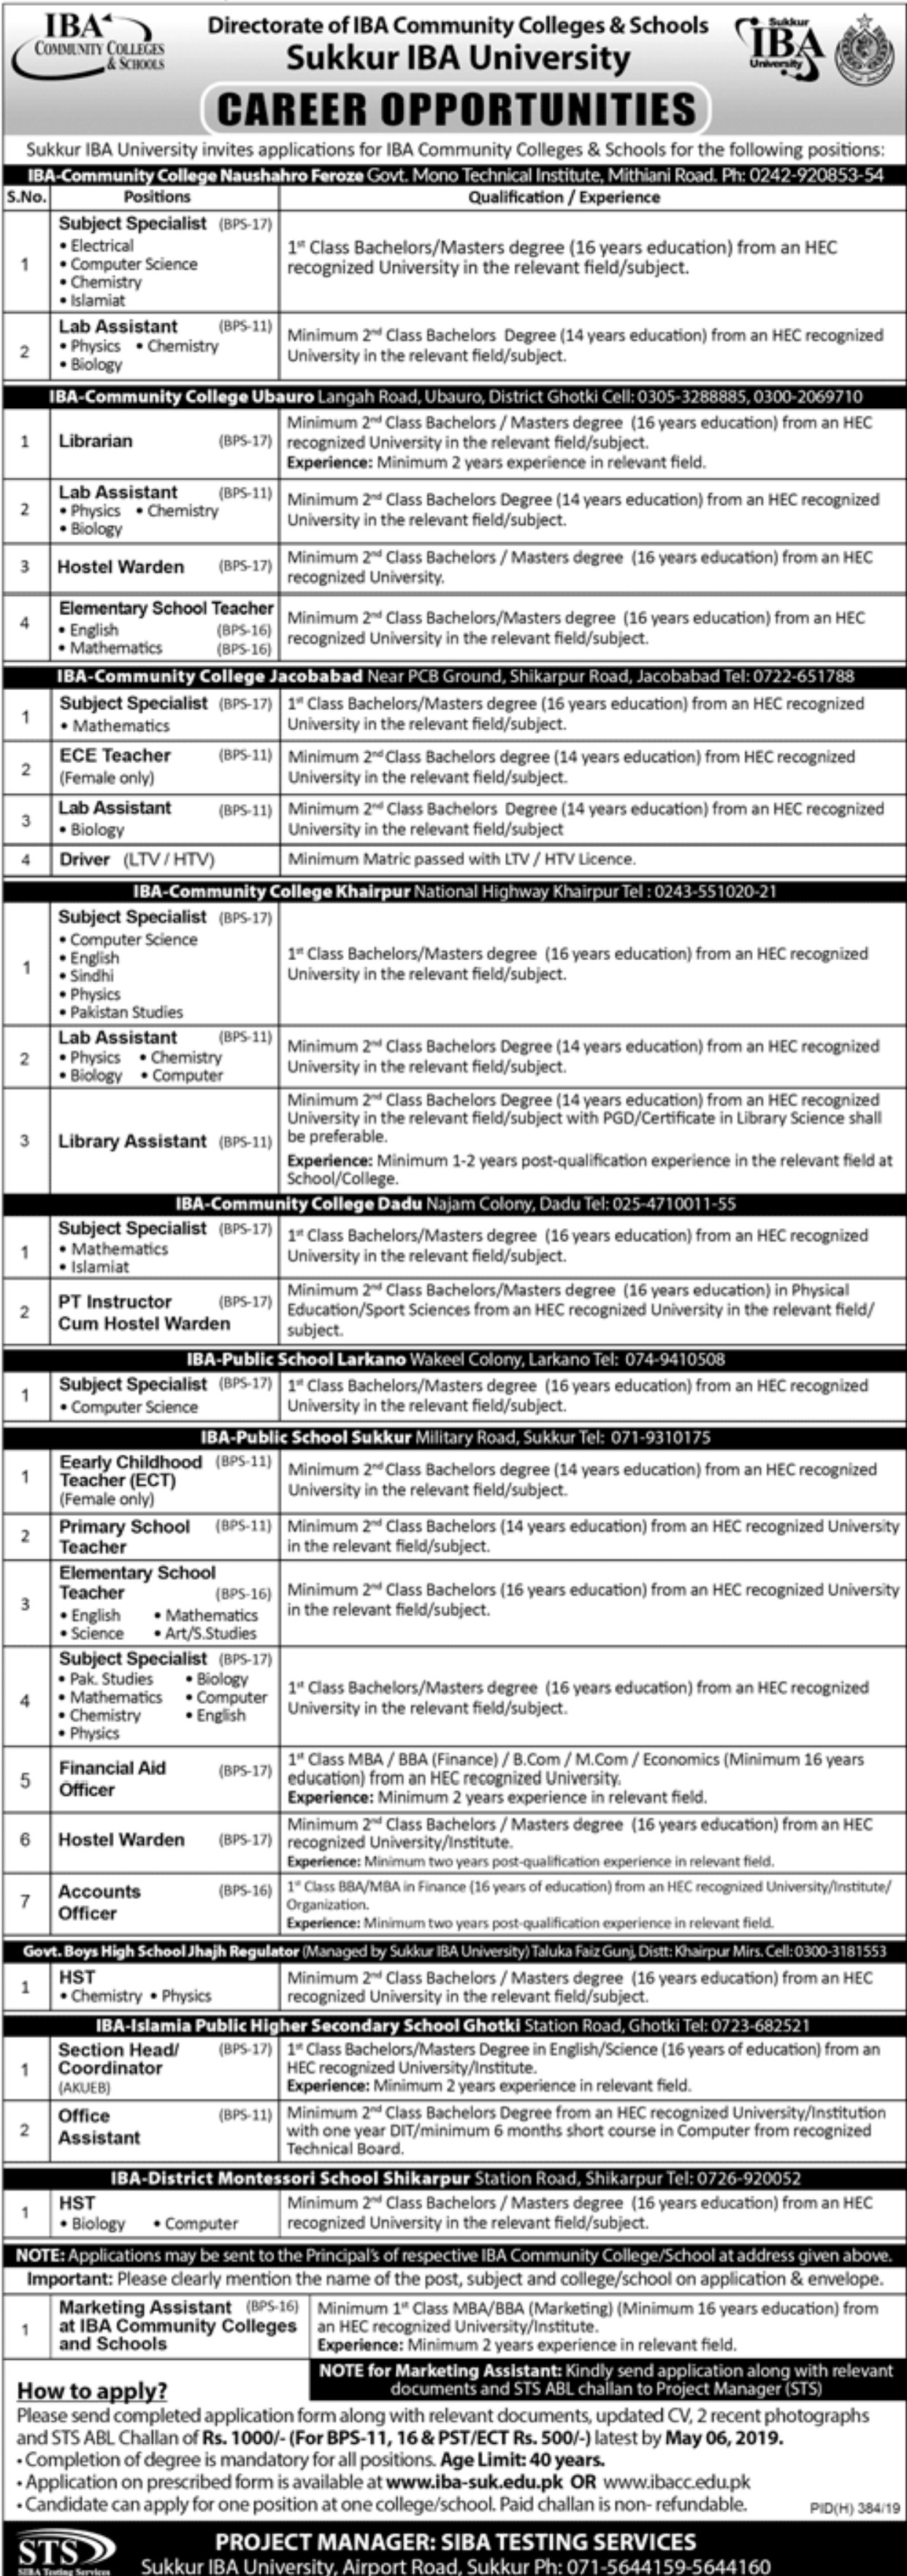 Sukkur IBA University Jobs 2019 Sindh Apply through STS Website